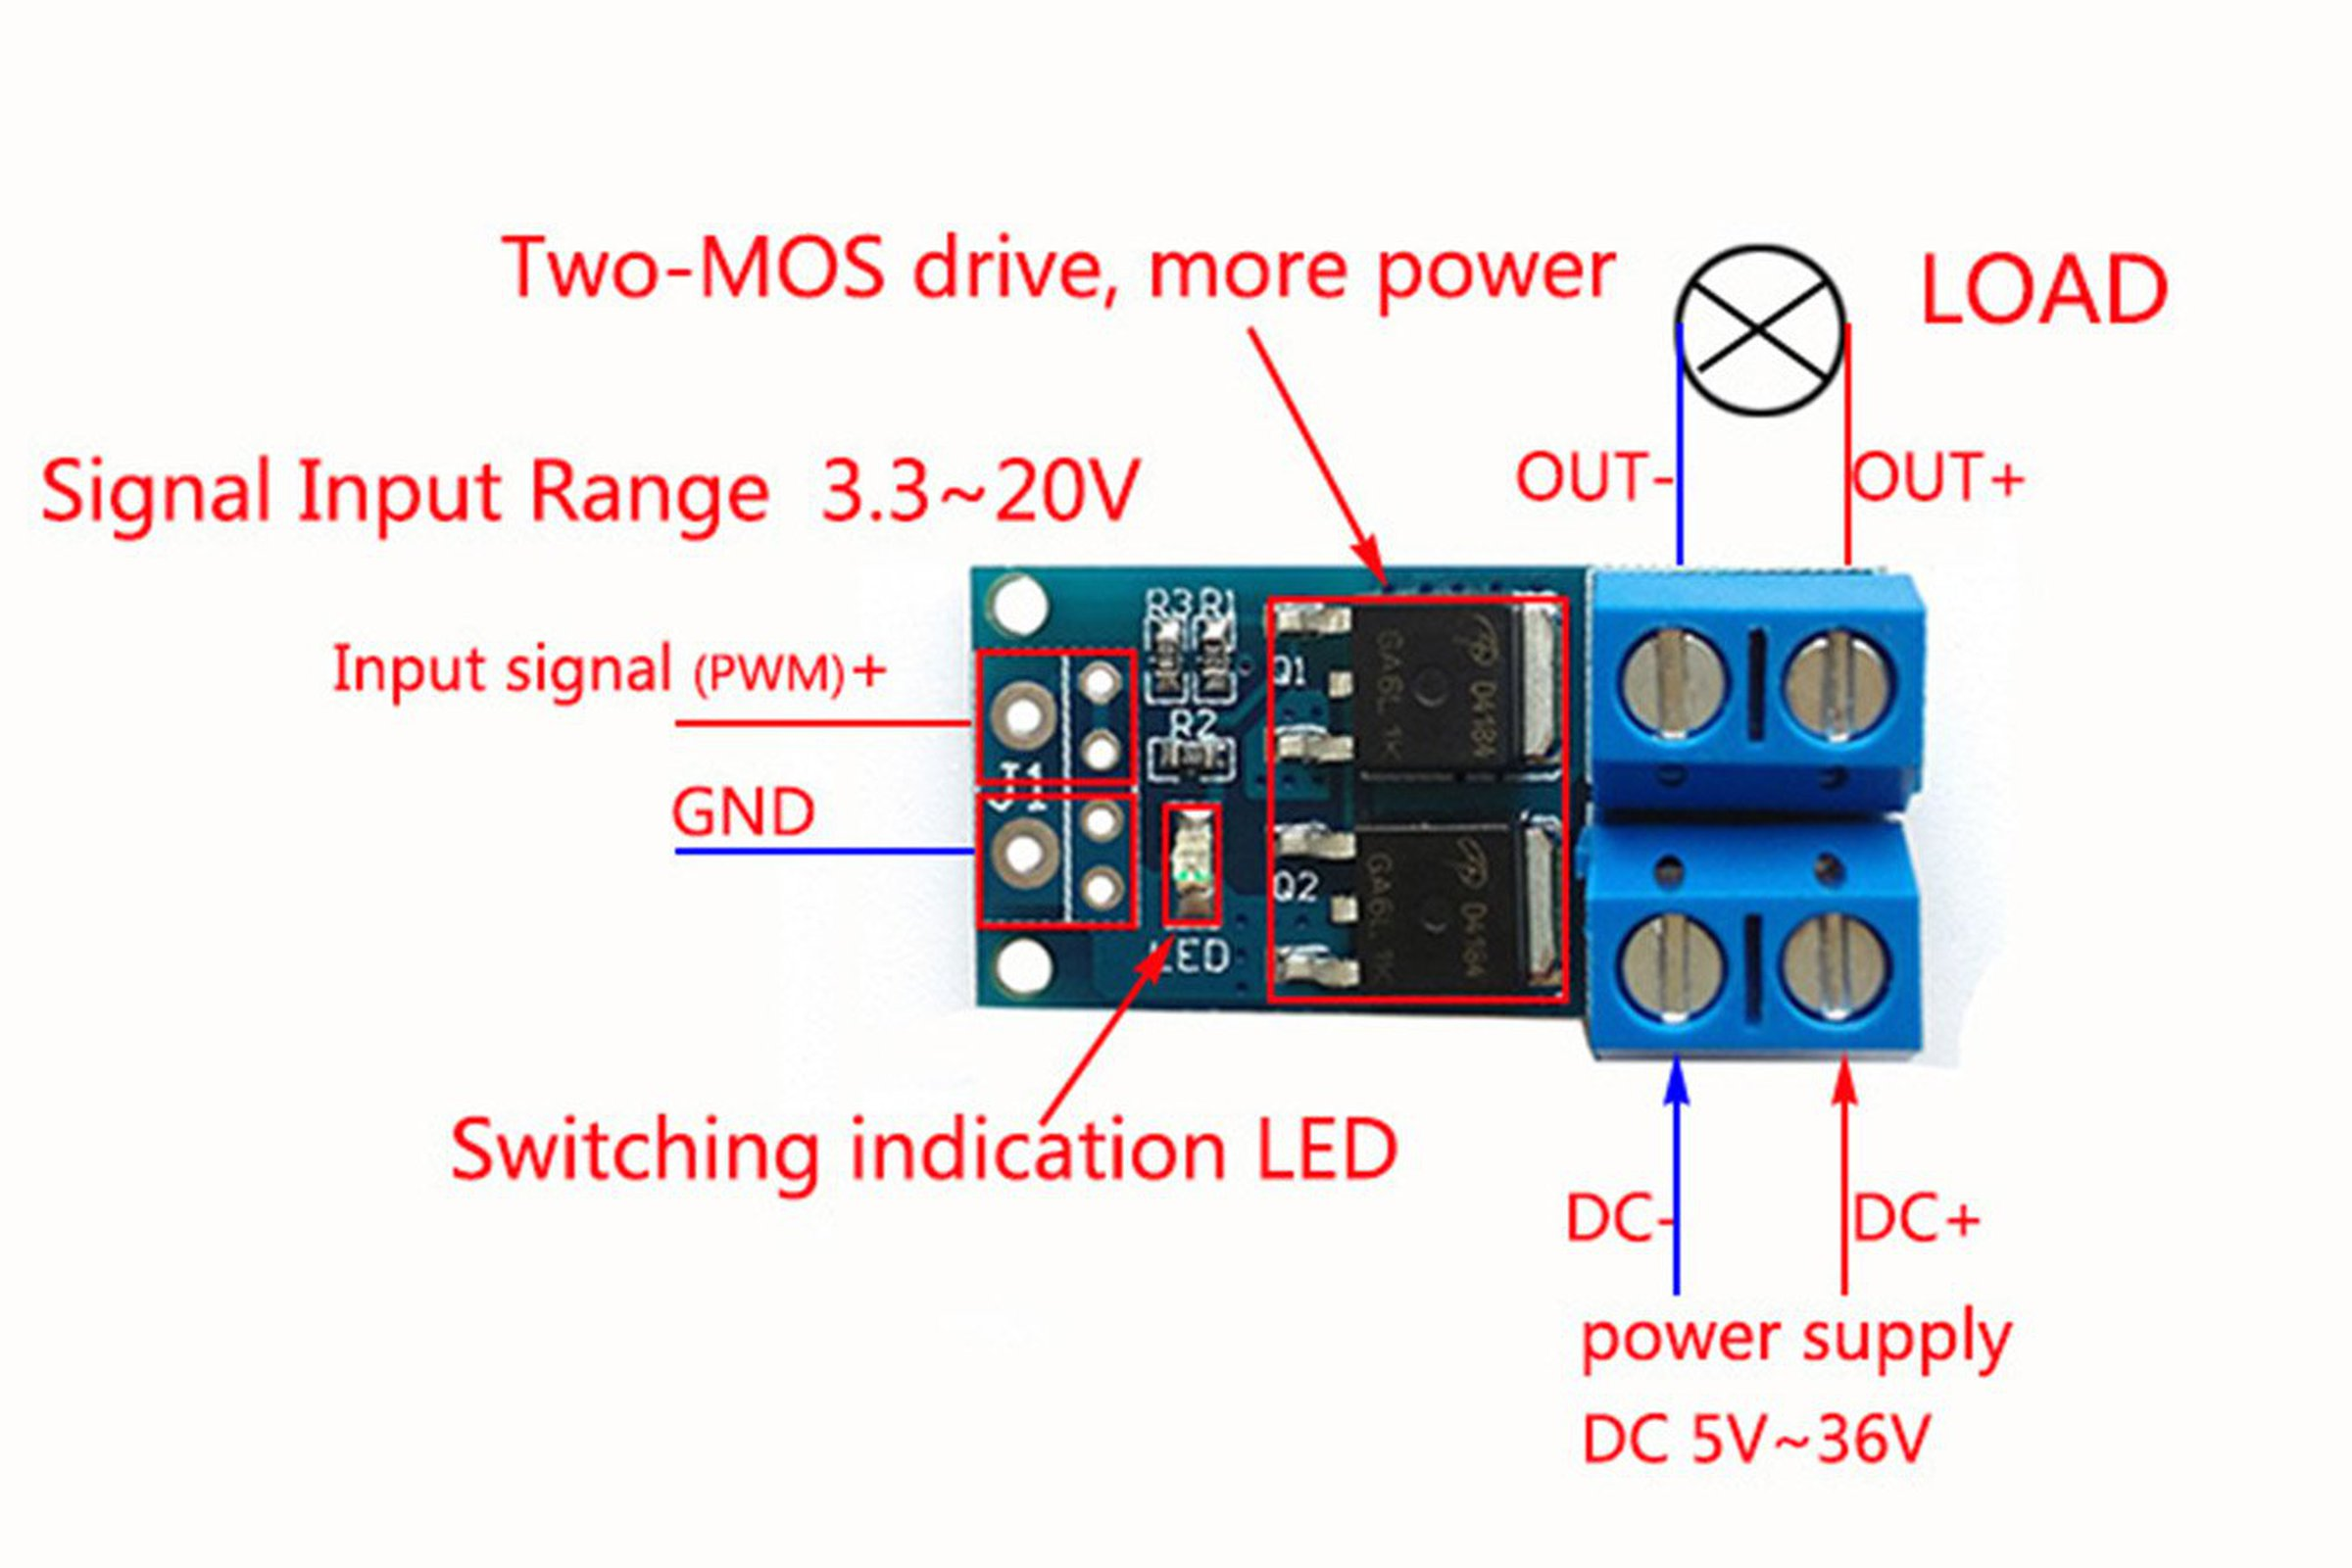 Mos Tube Transistor Pwm Regulator Switch10536 From Icstation On Tindie Dc Power Controller Schematic 6